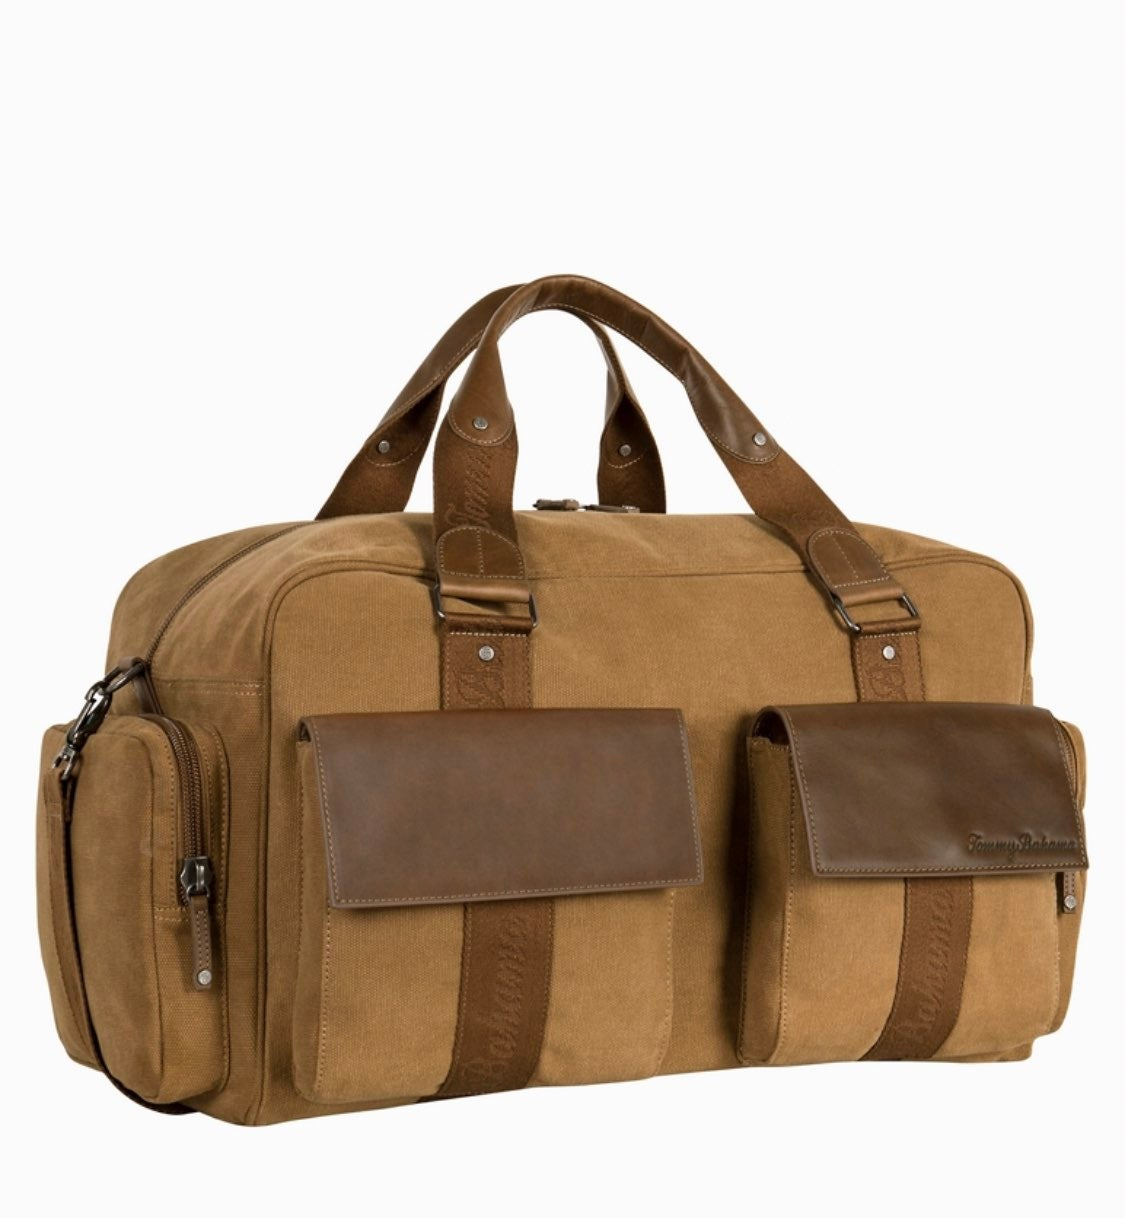 Tommy Bahama Canvas Leather Duffle